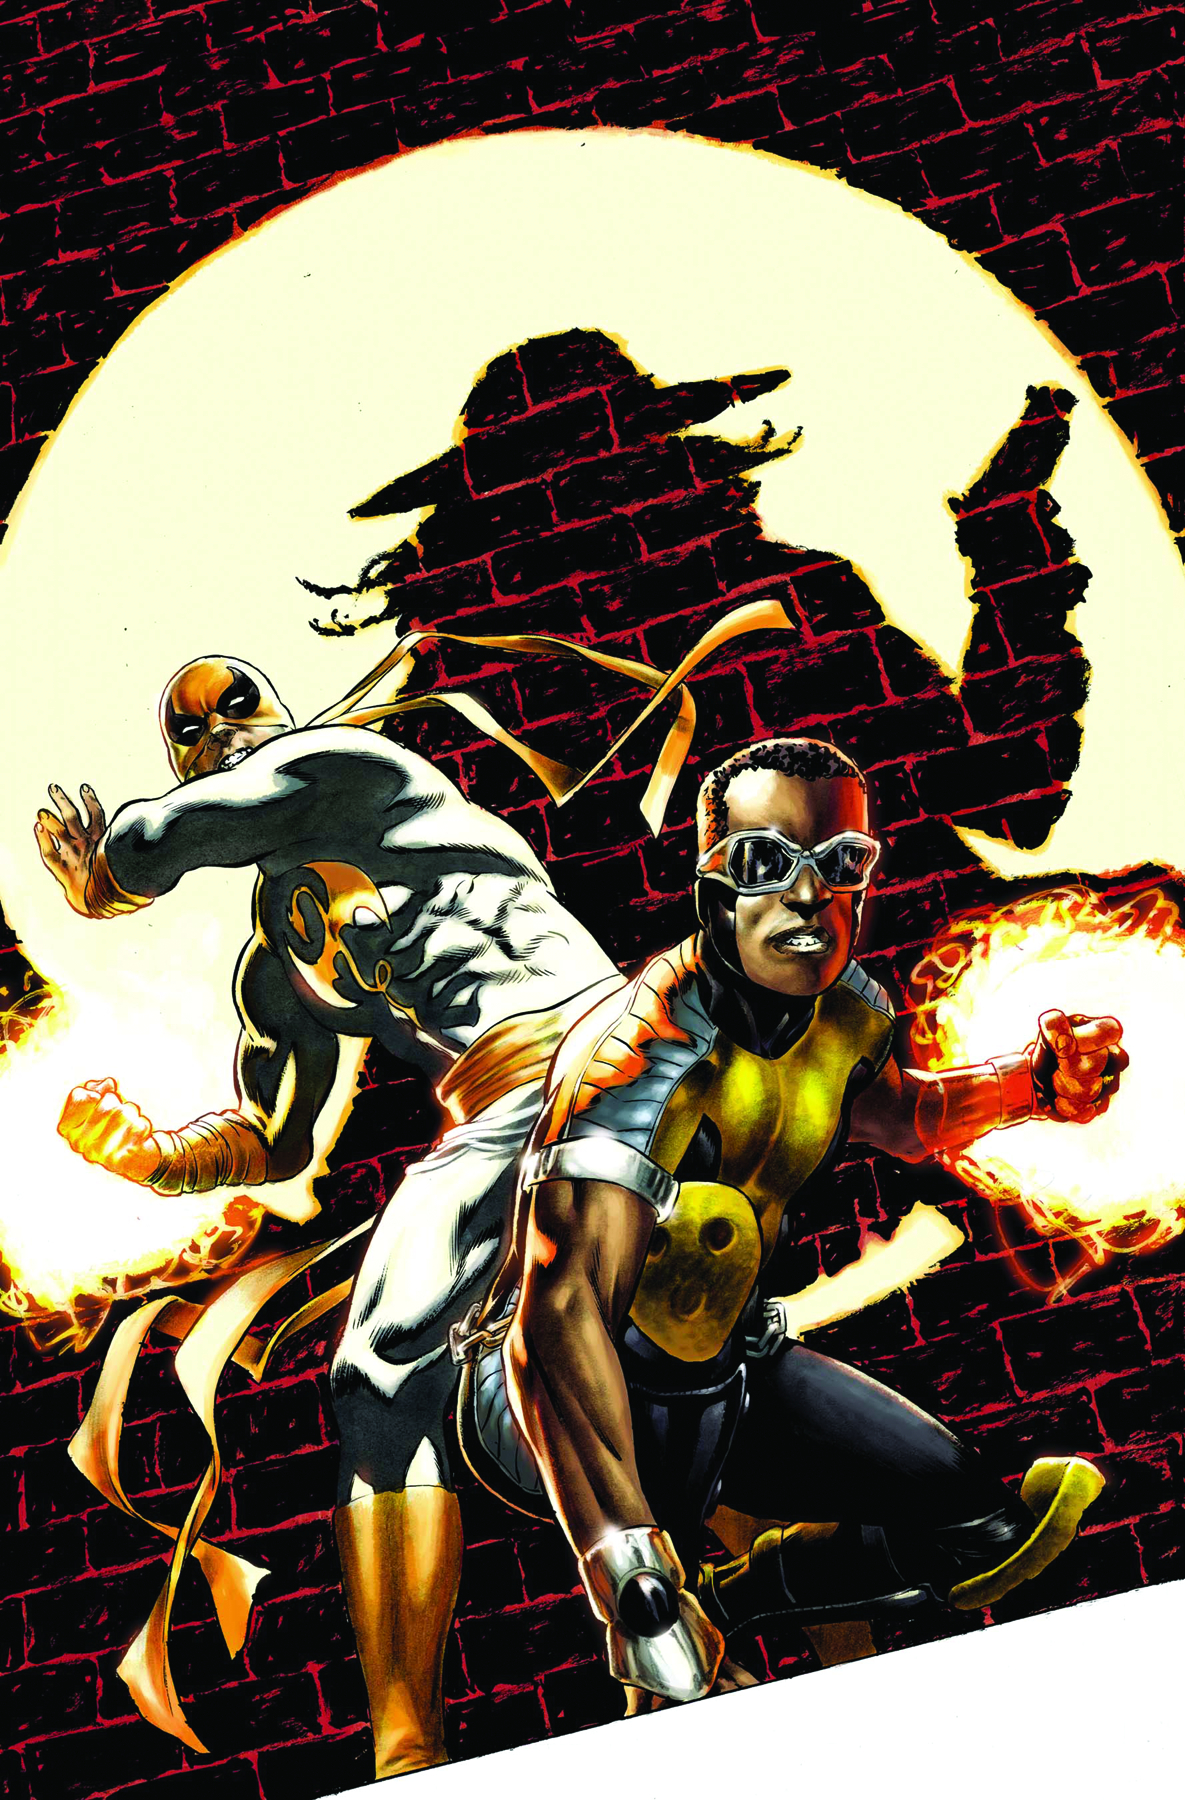 POWER MAN AND IRON FIST #2 (OF 5)